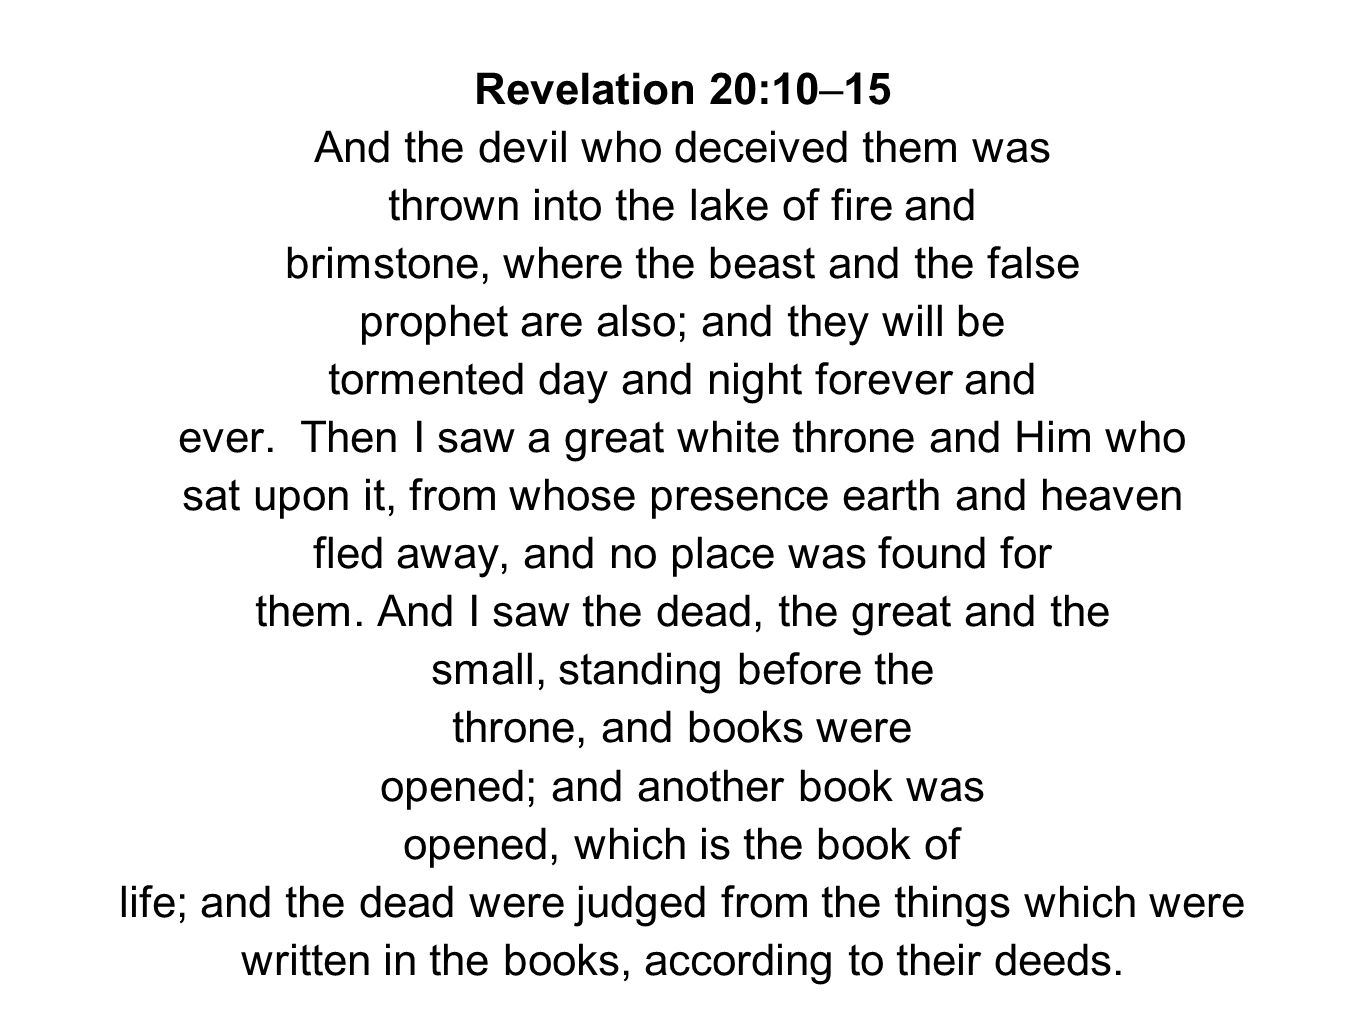 Revelation 20:10–15 And the devil who deceived them was thrown into the lake of fire and brimstone, where the beast and the false prophet are also; and they will be tormented day and night forever and ever.